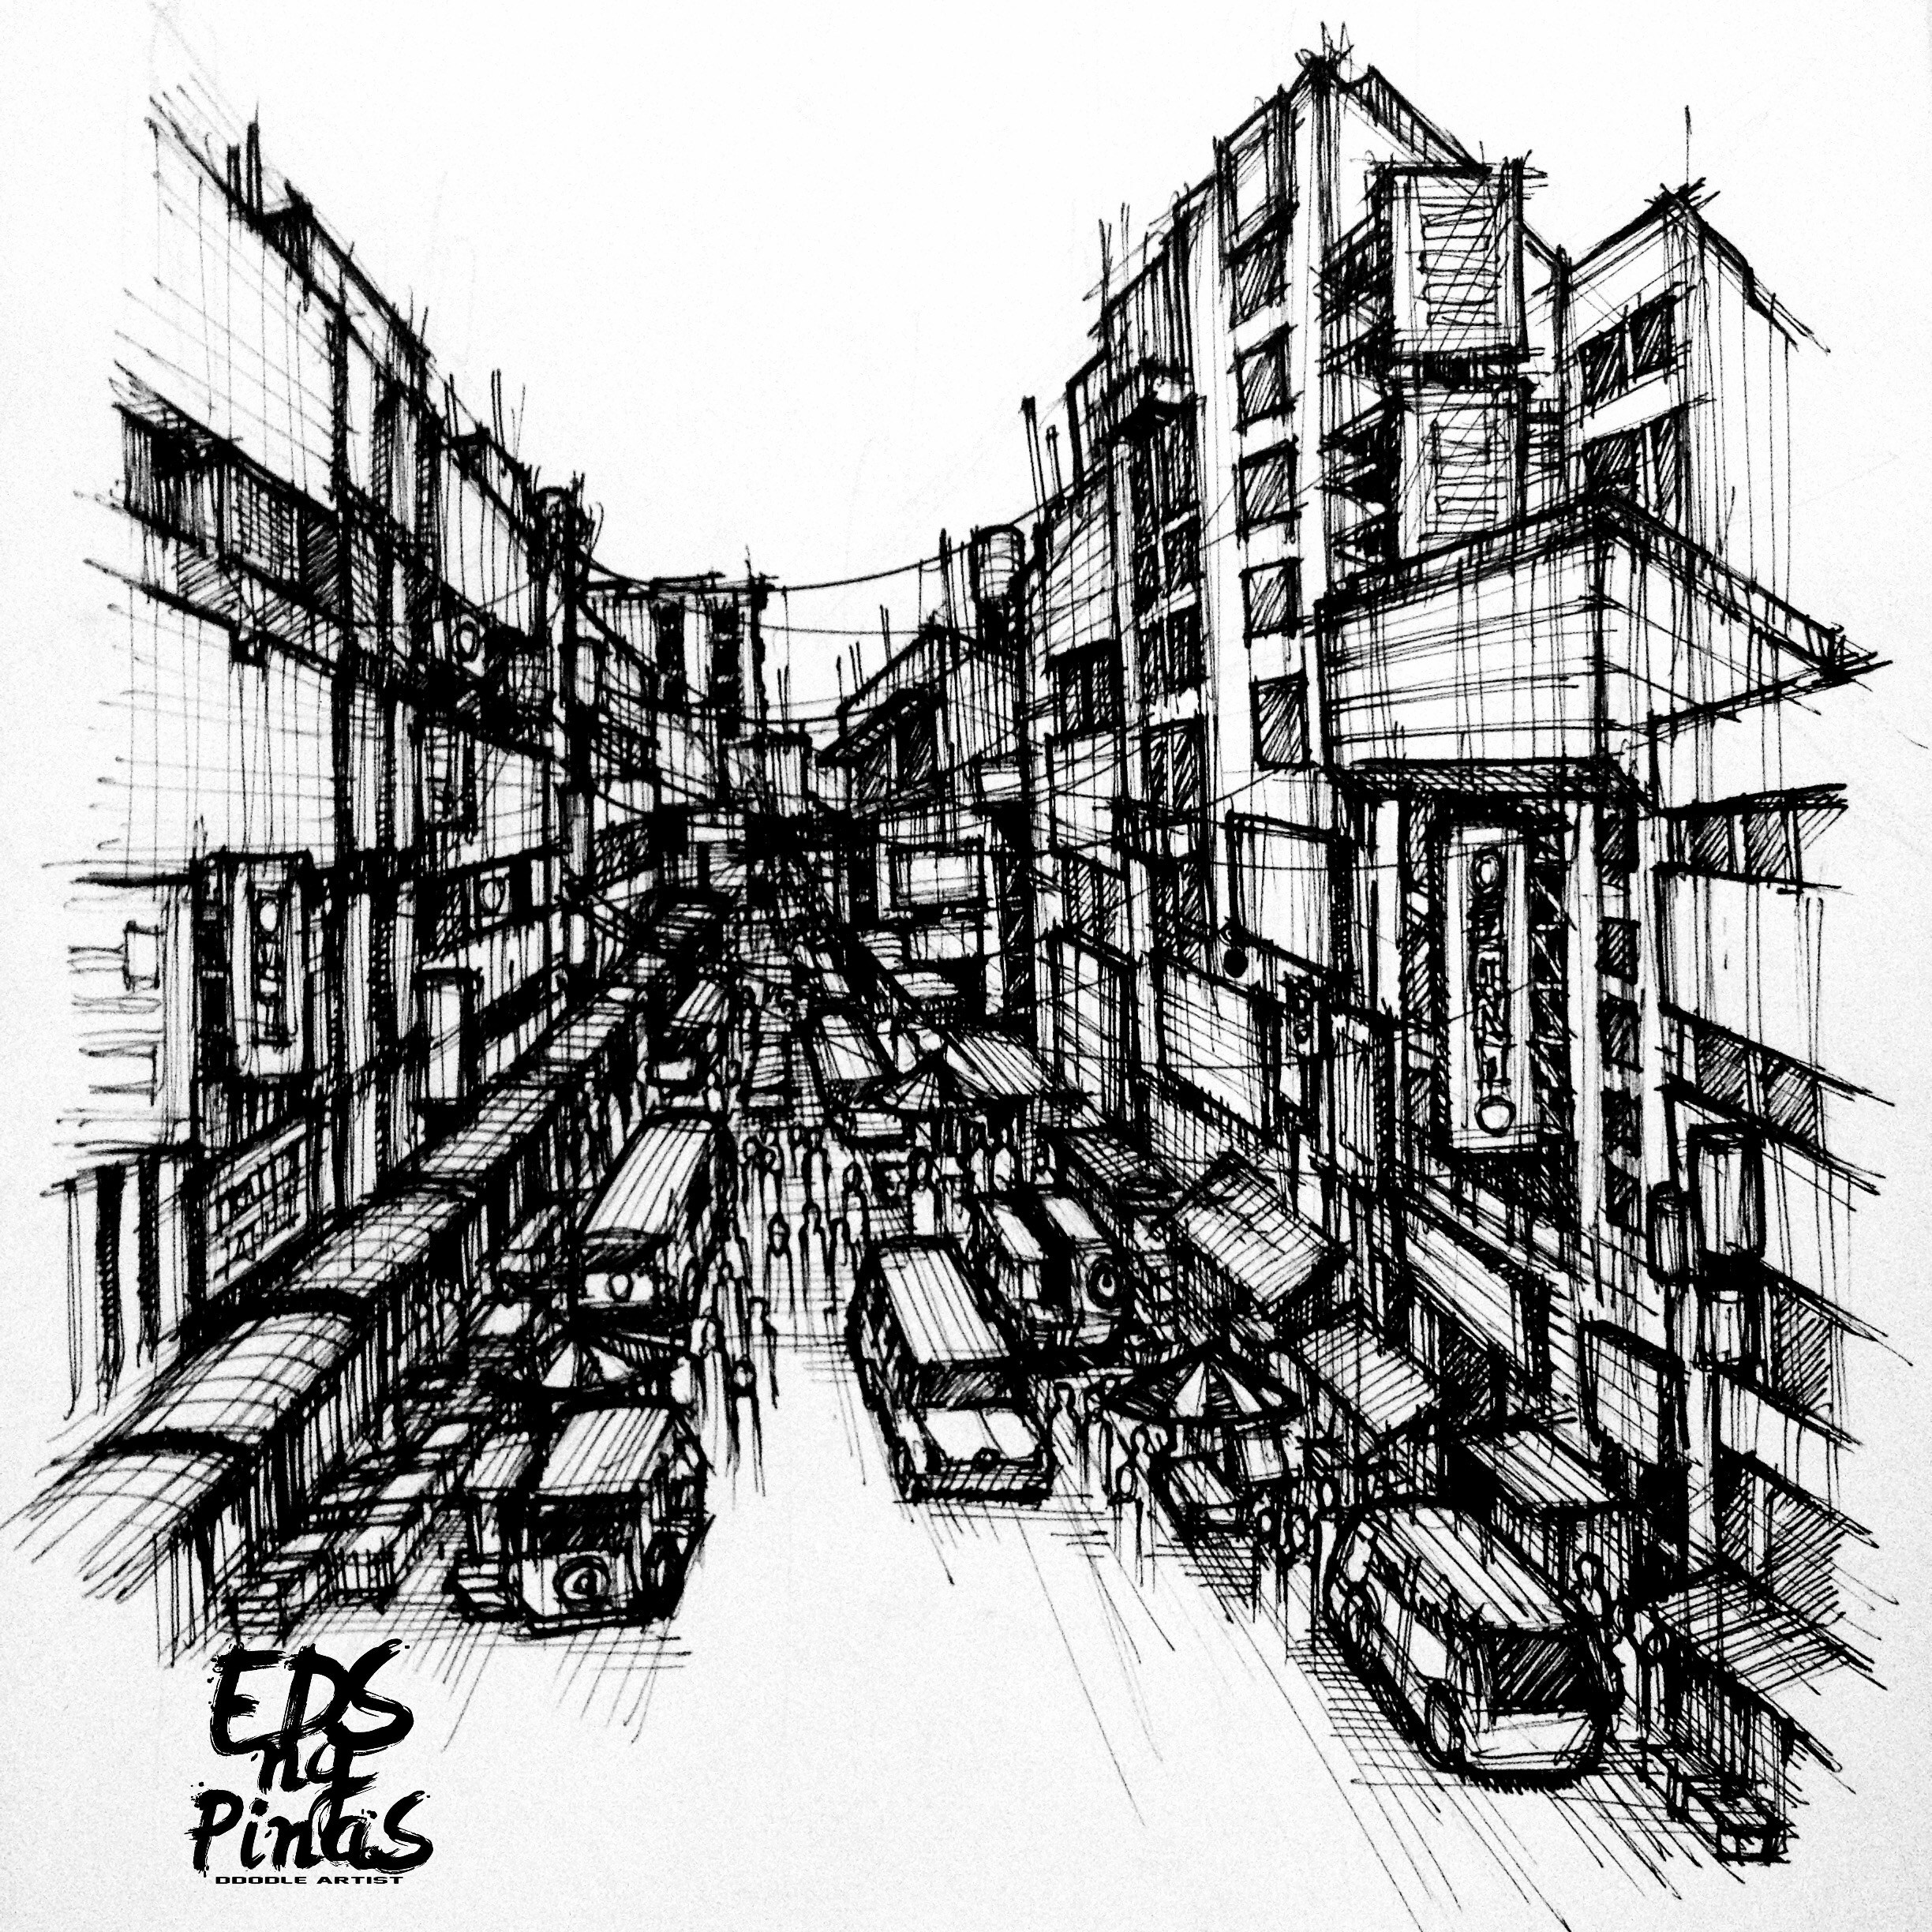 2448x2448 6 Urban Sketches Reveals The Commuting Life In Manila Psst! Ph